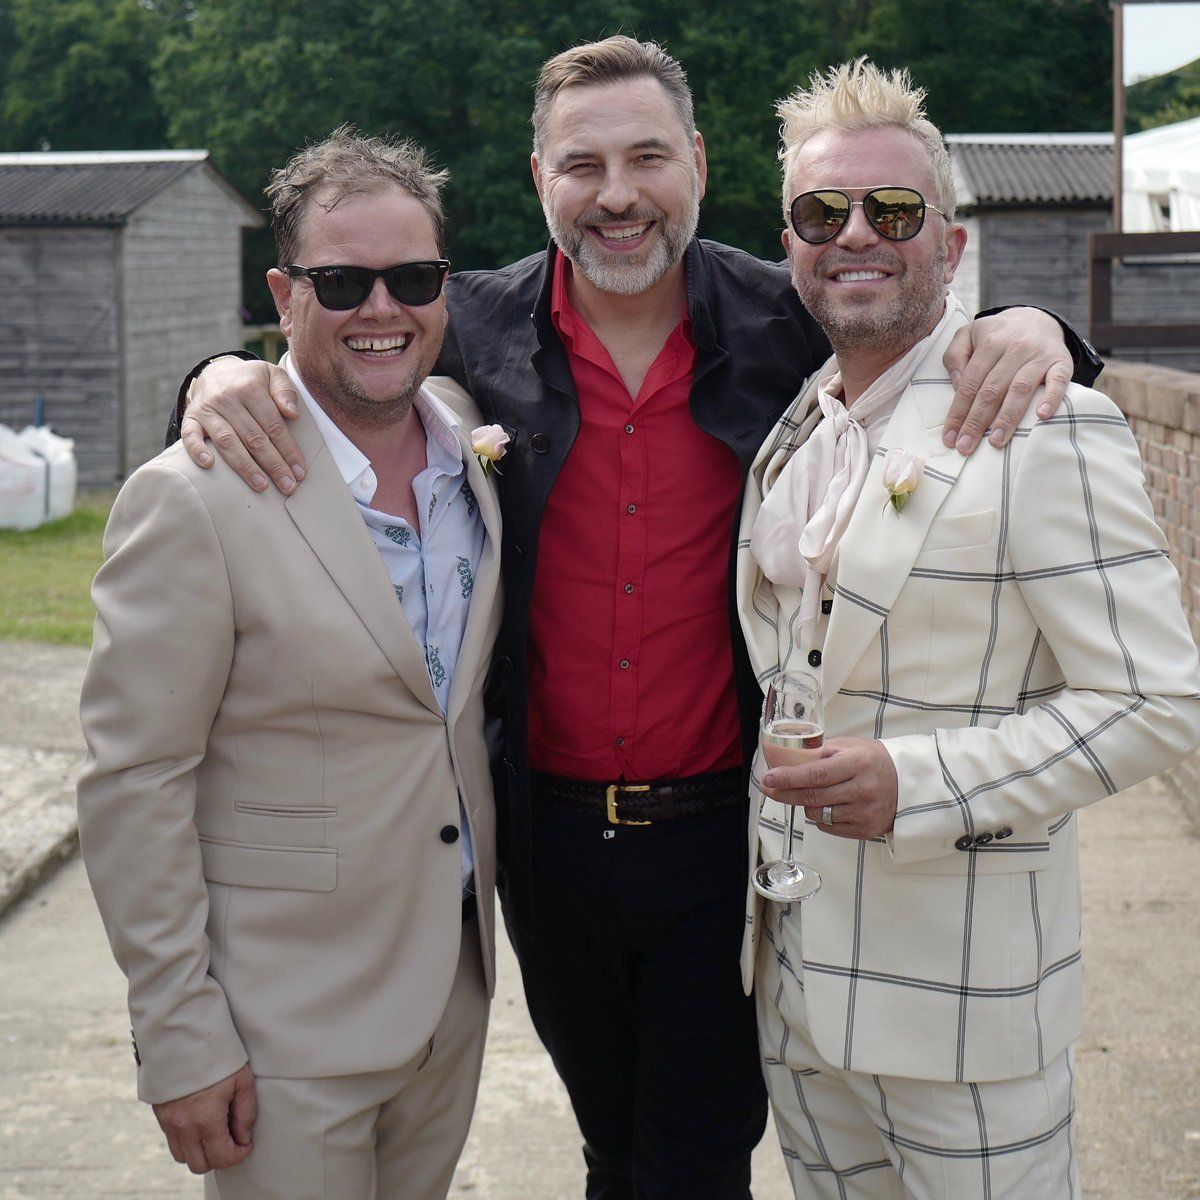 David Walliams Gives Glimpse Into Alan Carr's Star-Studded Wedding Party With Candid